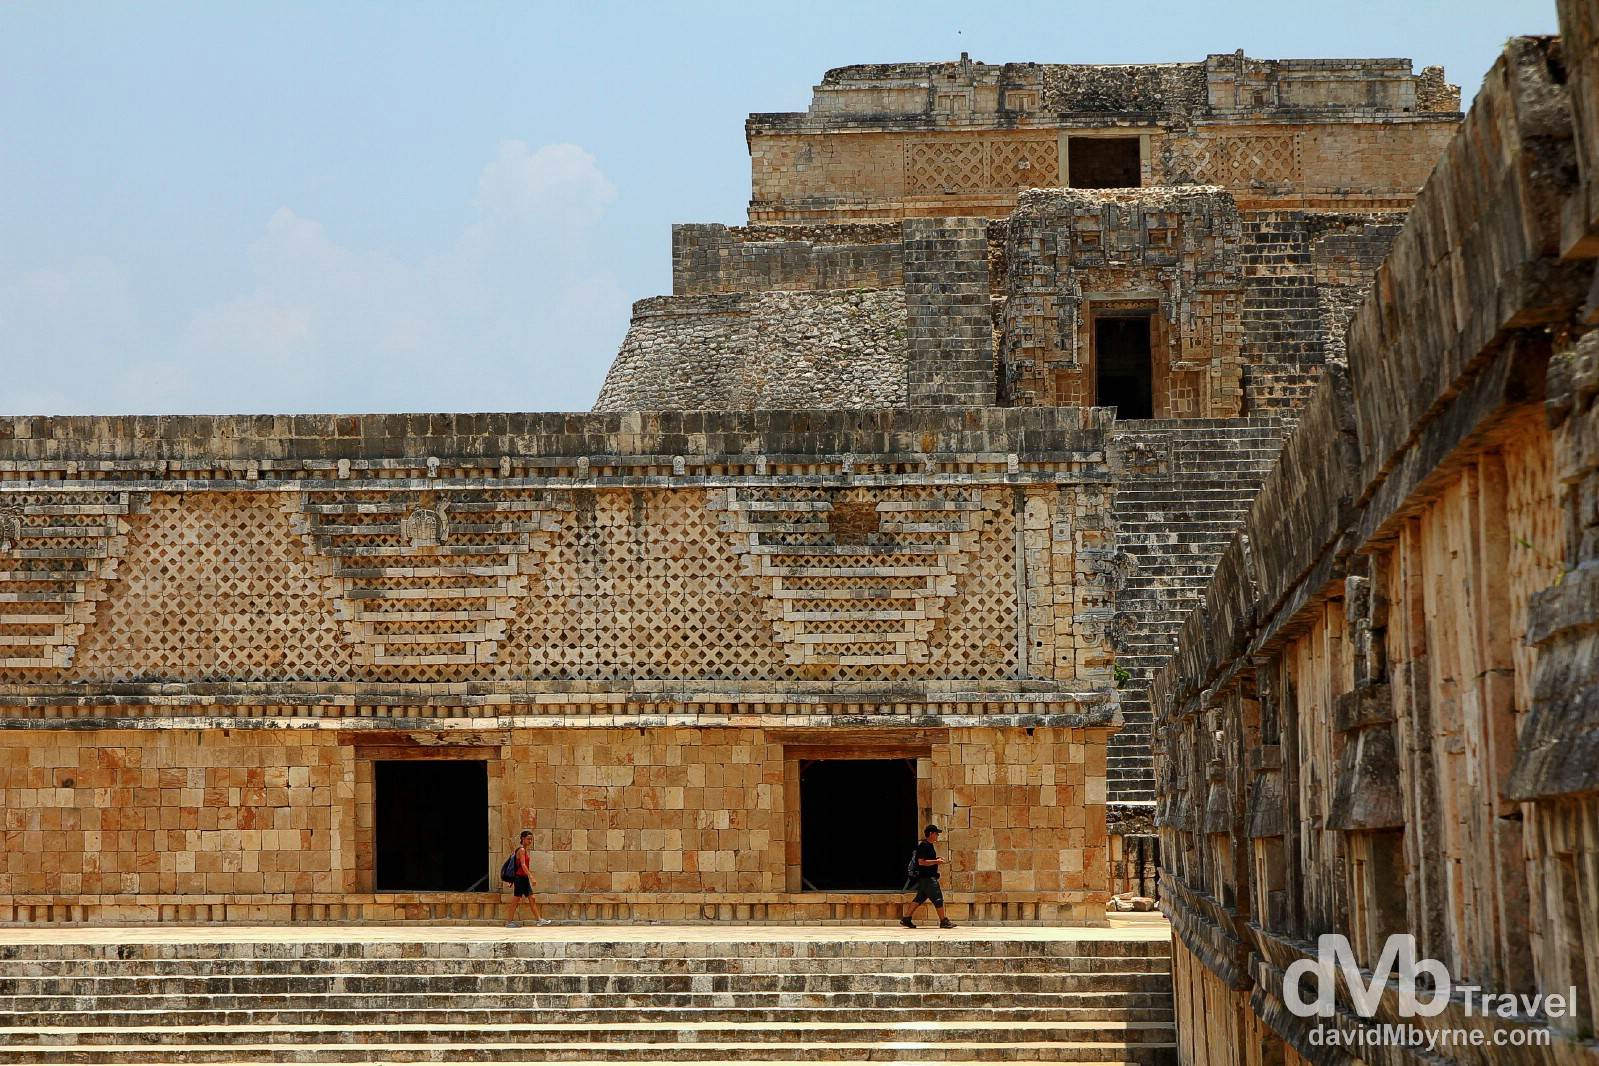 Uxmal Mayan ruins, Yucatan Peninsula, Mexico. May 2nd 2013.